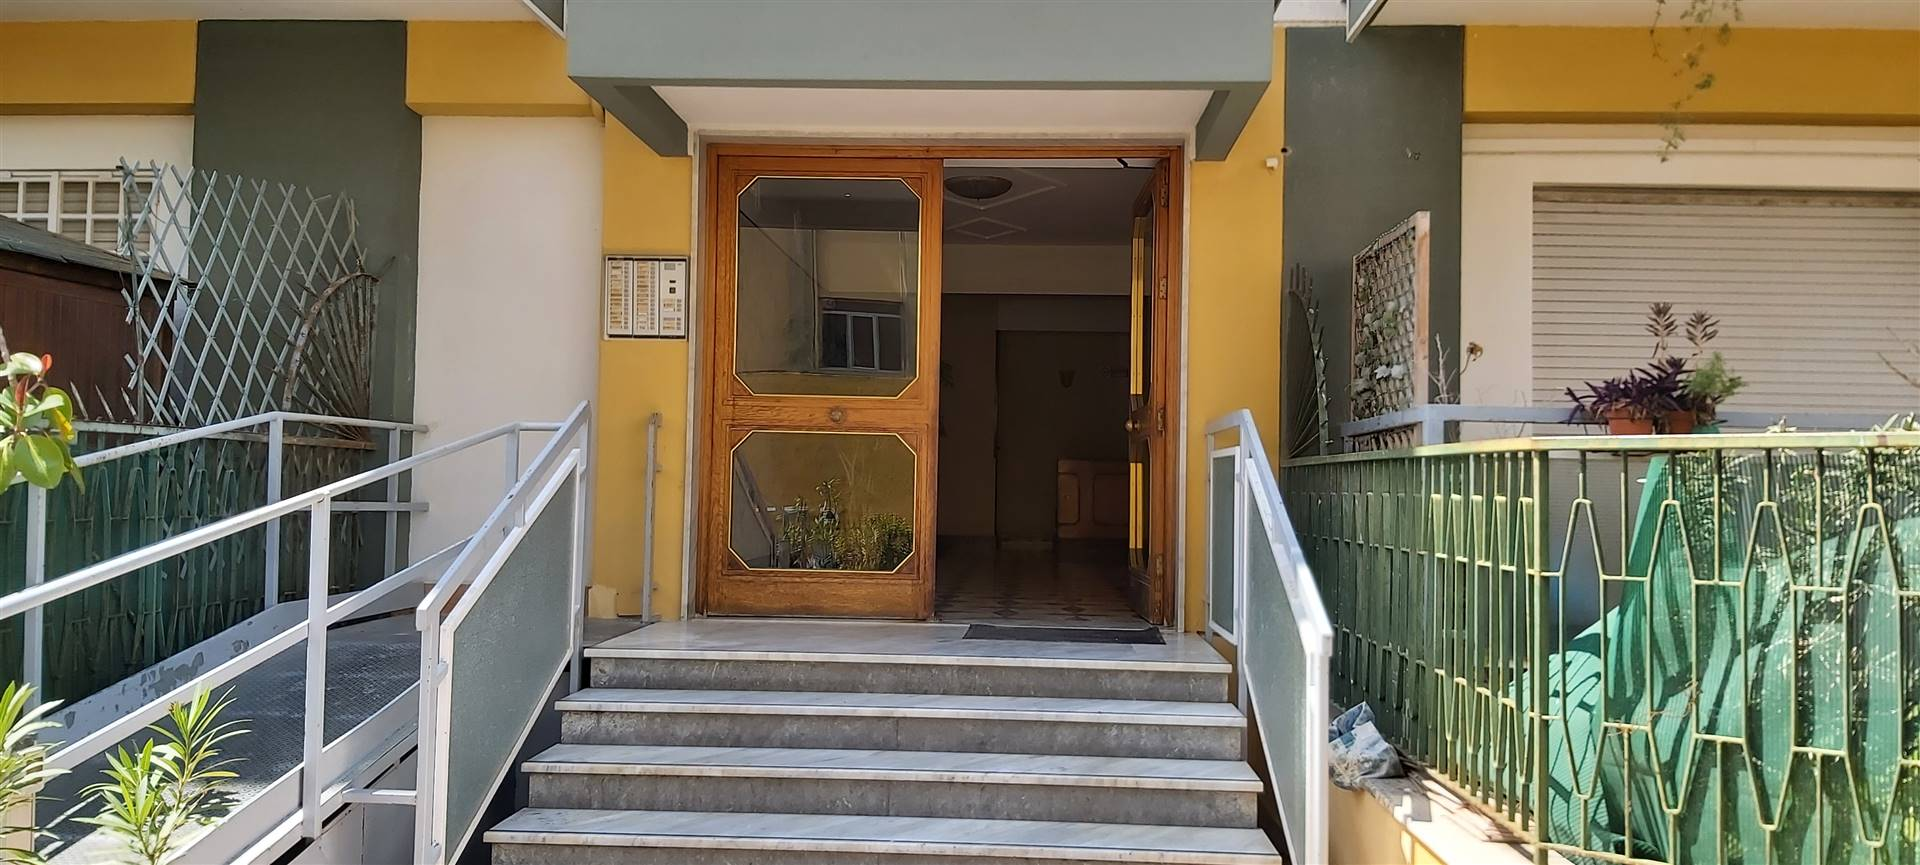 STRASBURGO, PALERMO, Apartment for rent of 118 Sq. mt., Habitable, Heating Individual heating system, Energetic class: G, Epi: 146,54 kwh/m2 year,